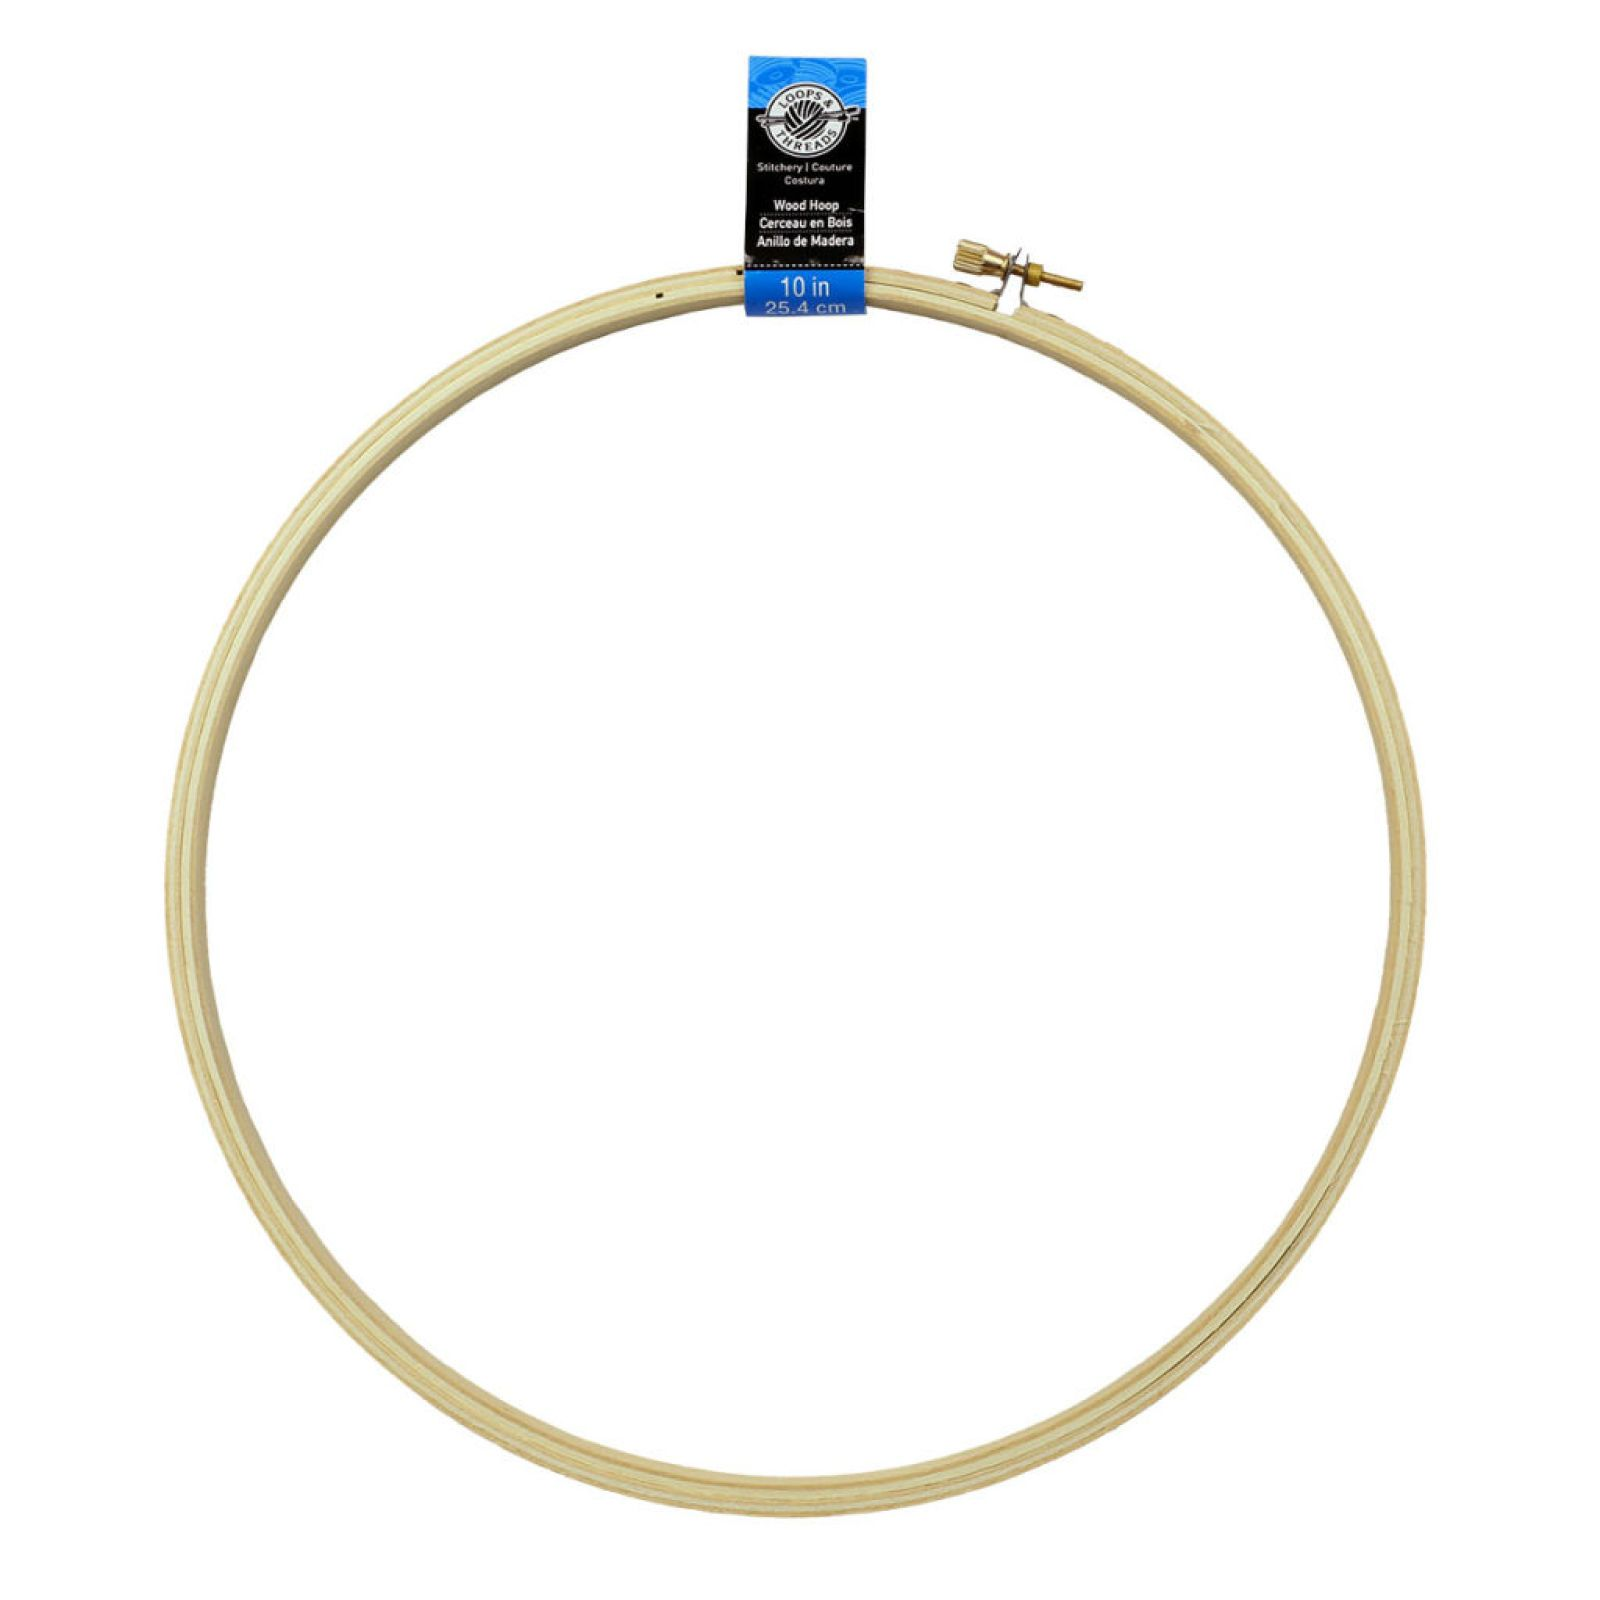 Loops Threads Wooden Embroidery Hoop In 2018 Montessori Toy Diy Wiring A Light Fixture On Loop 179 10